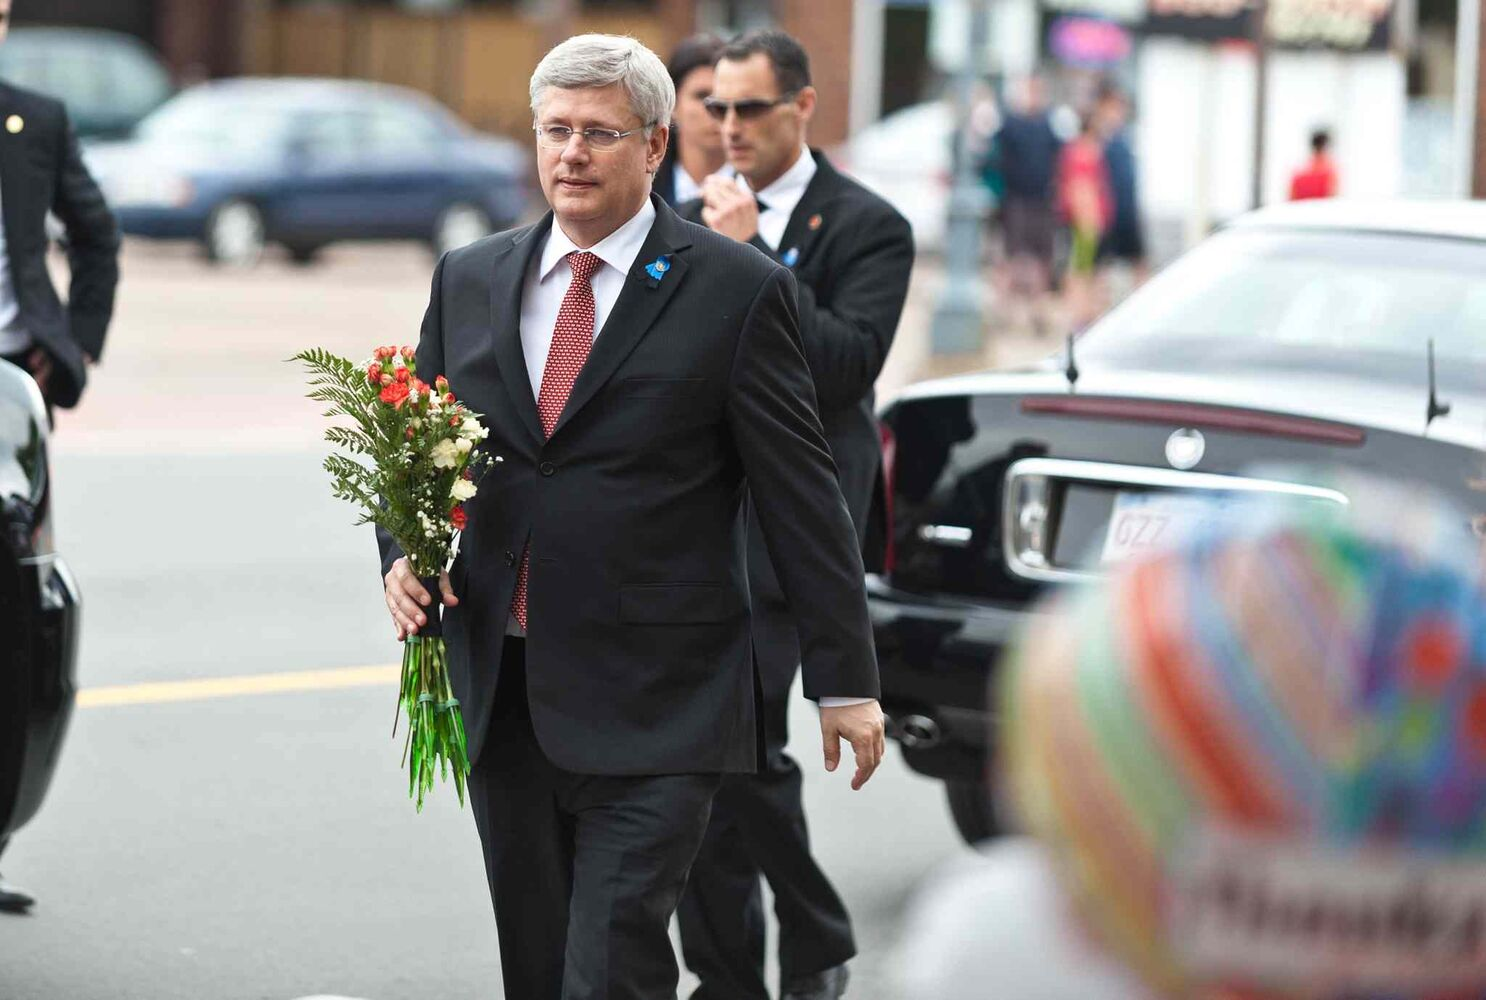 Prime Minister Steven Harper delivers flowers to the RCMP Headquarters in Moncton, N.B., following the regimental funeral for three slain RCMP officers.